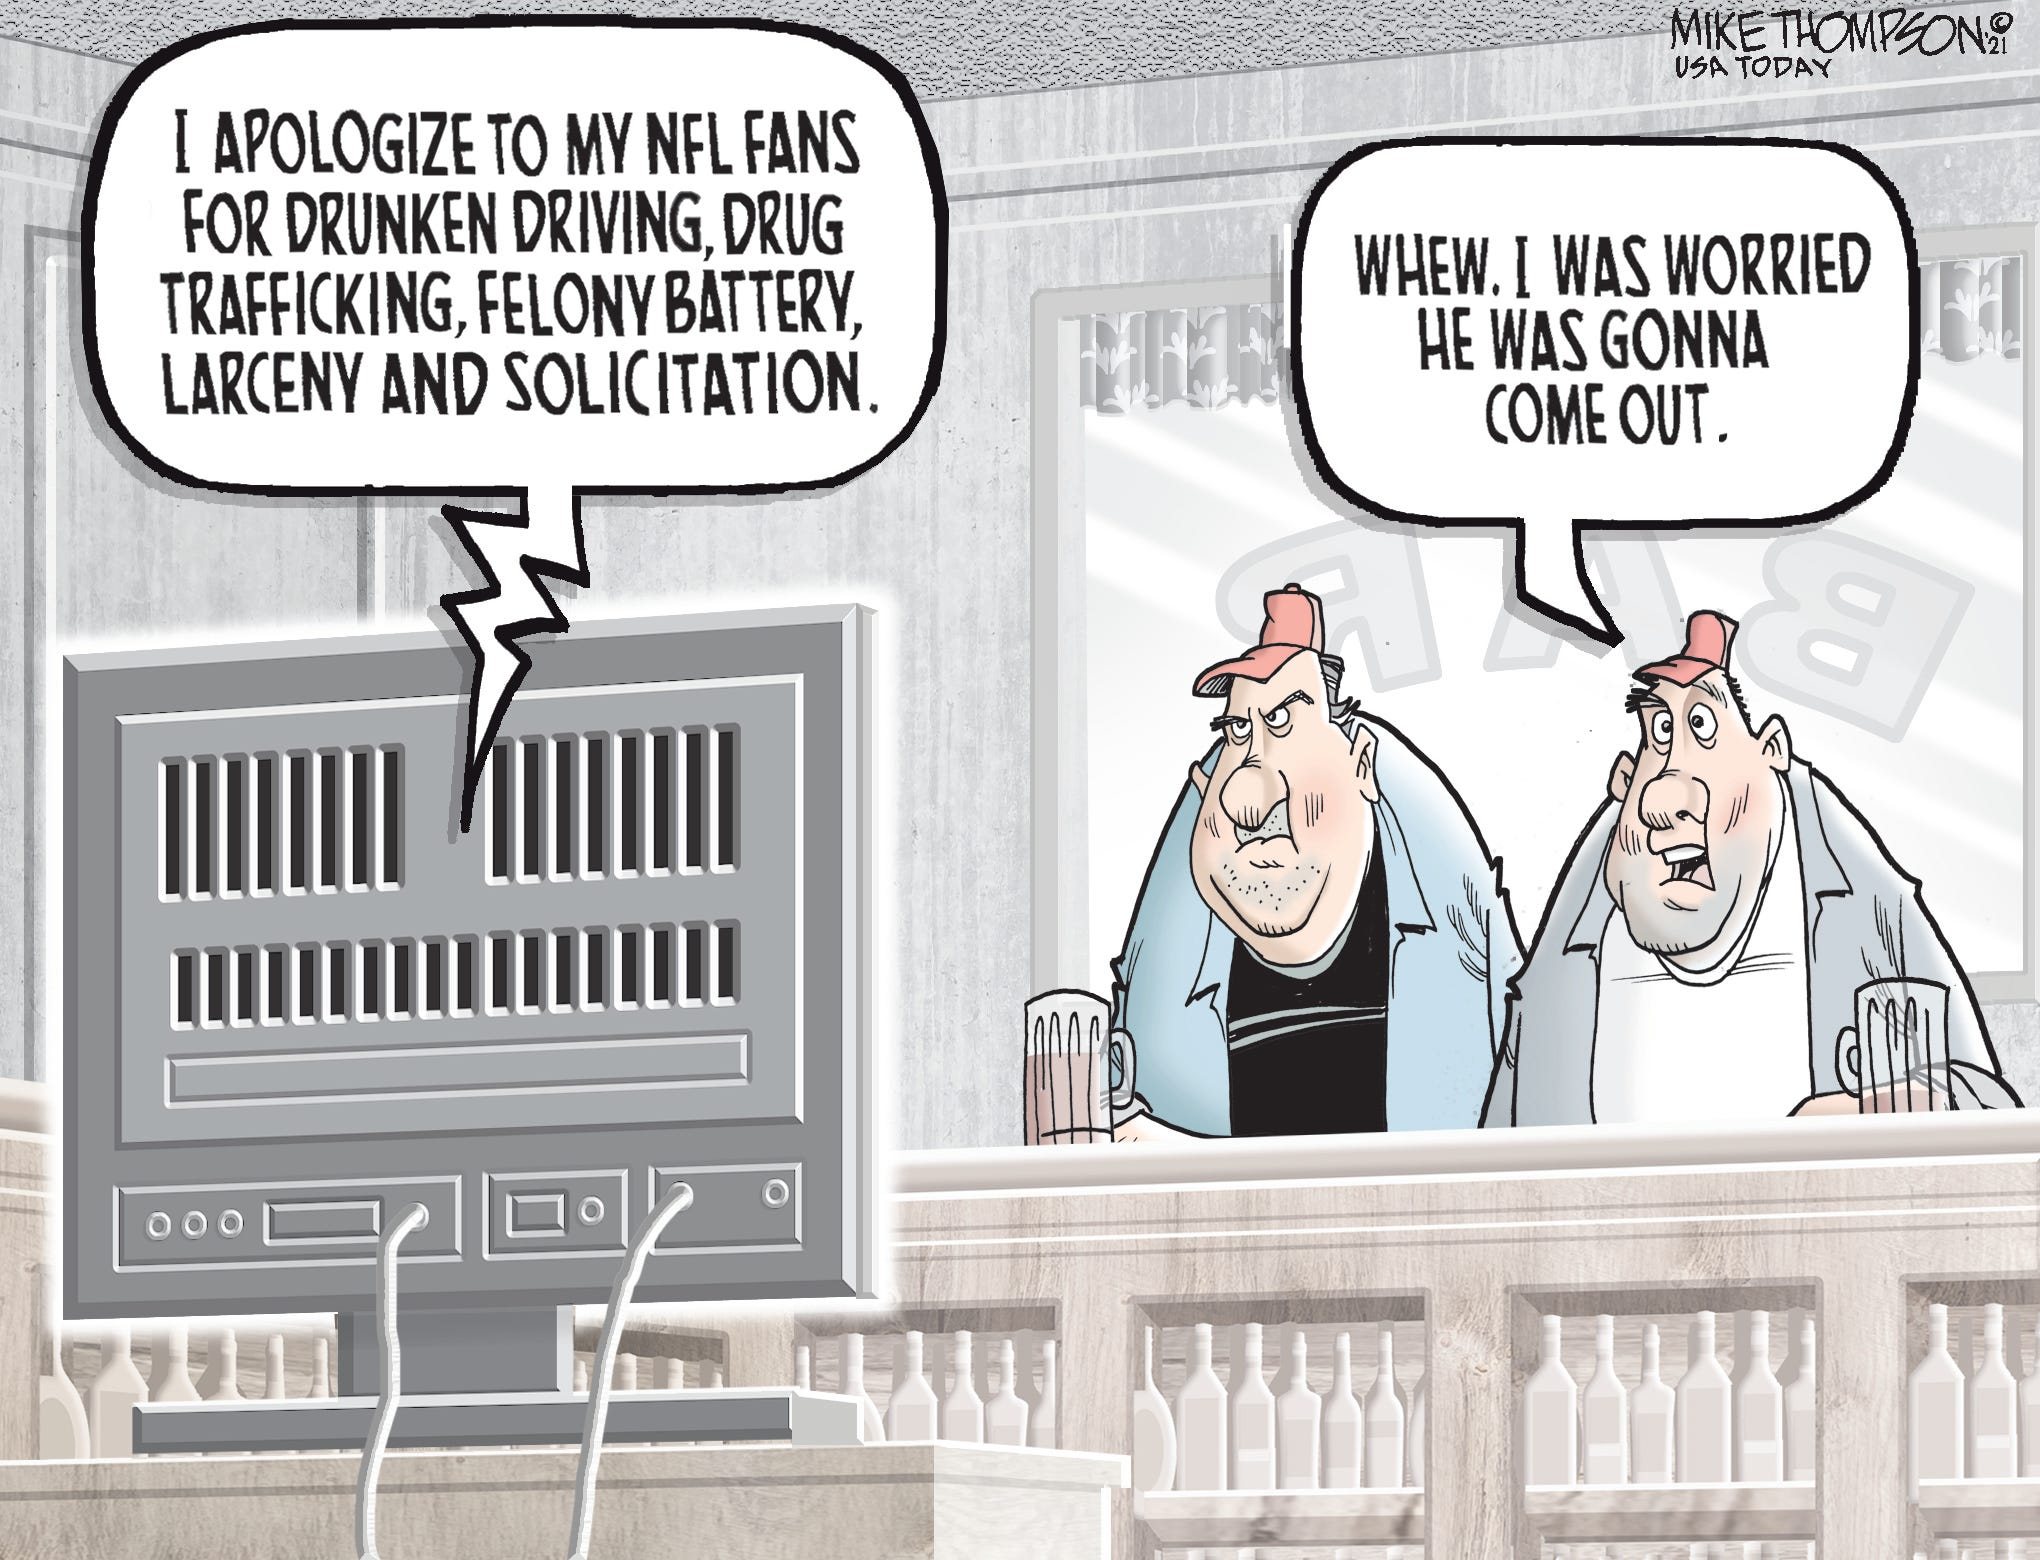 NFL player comes out: Today s Mike Thompson Toon